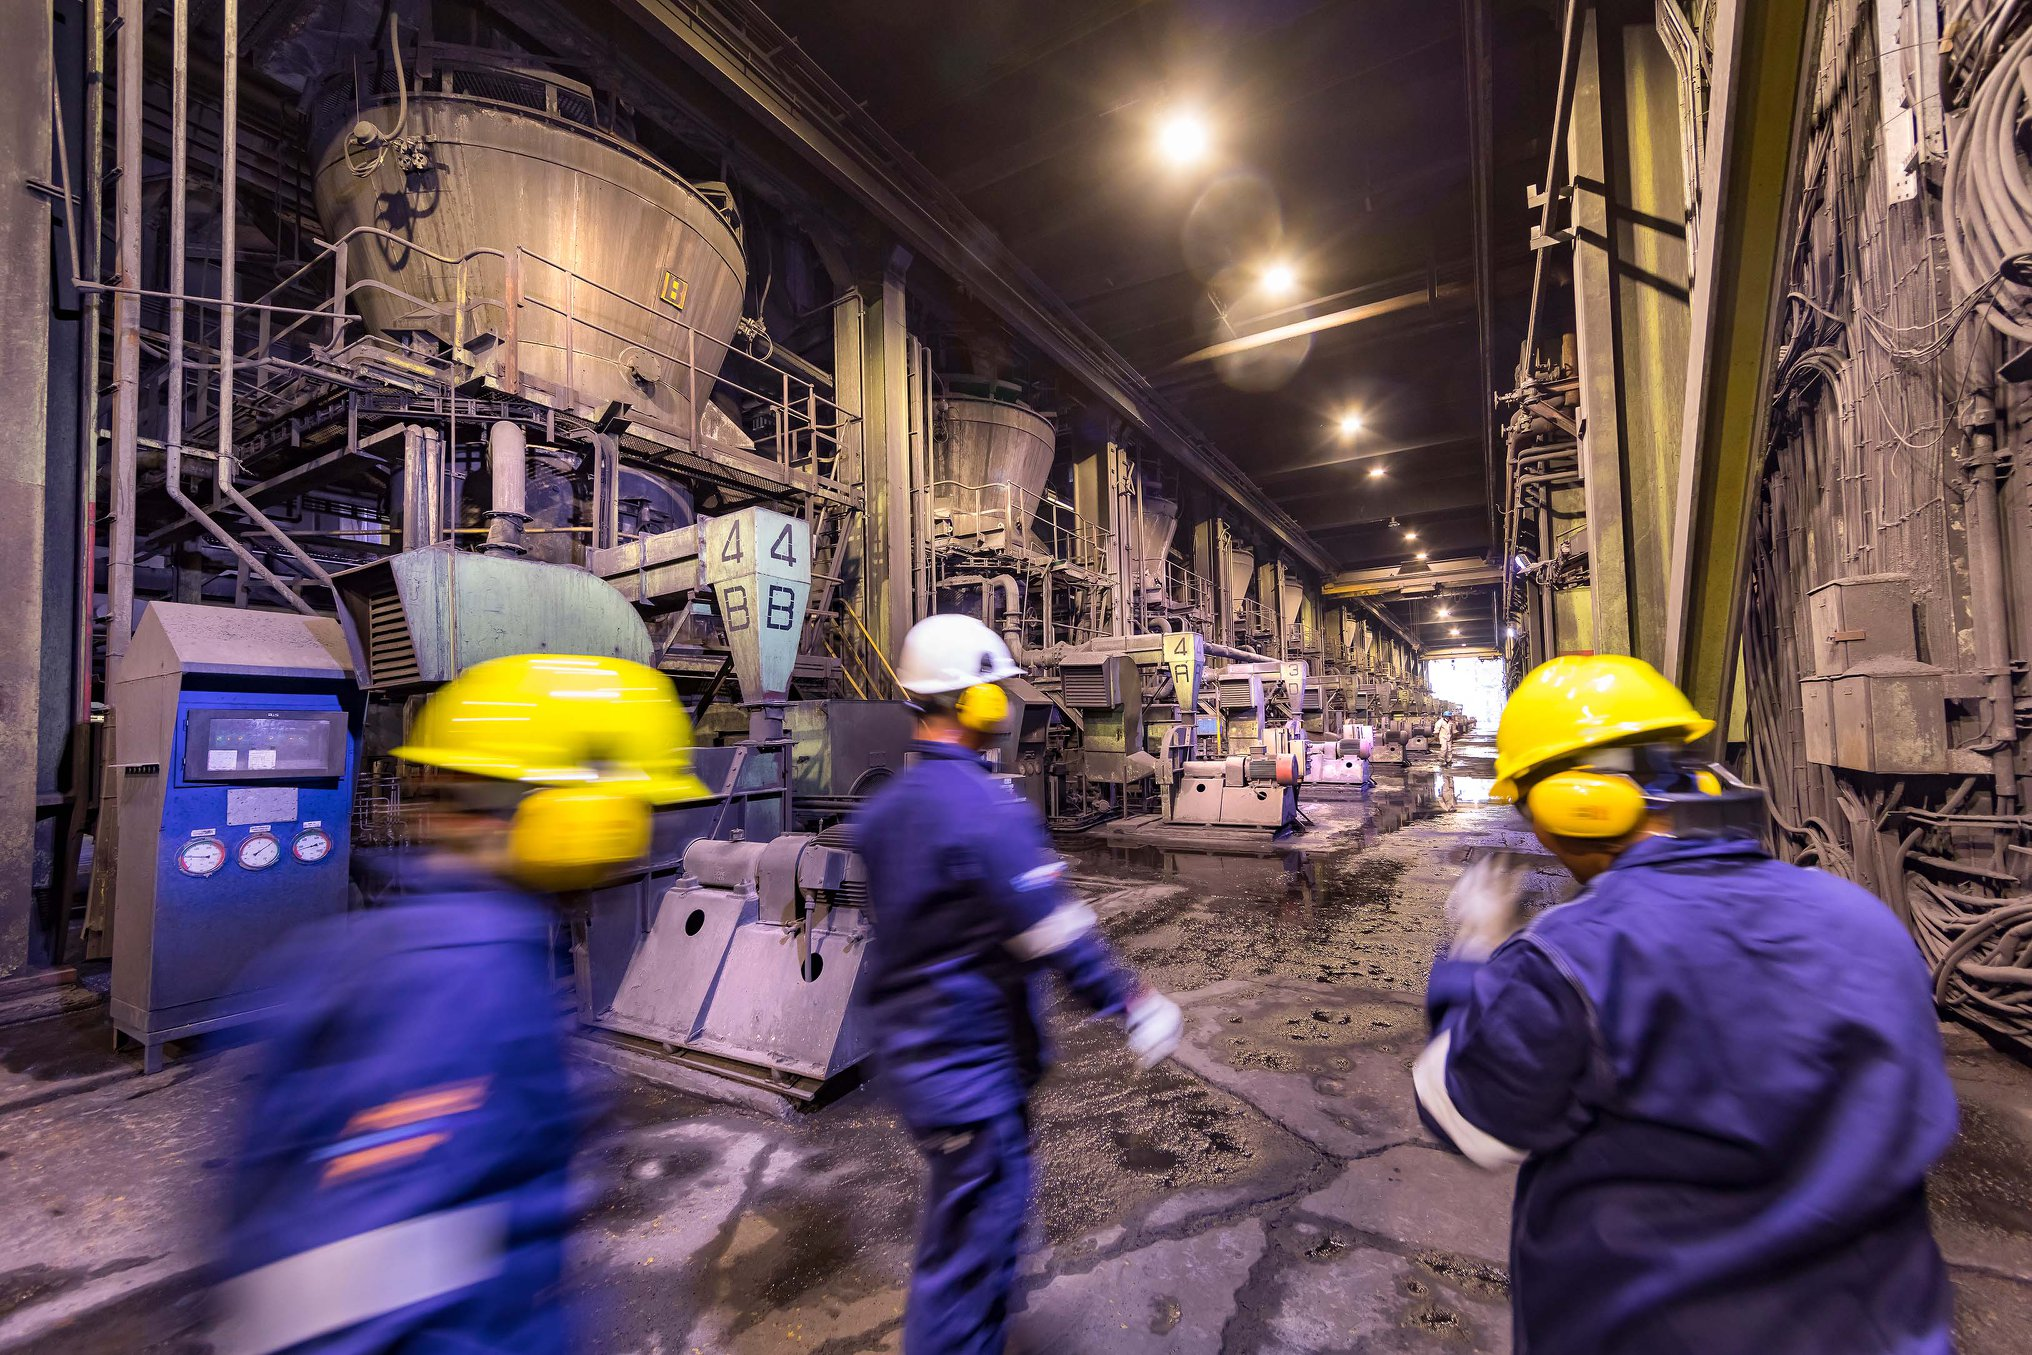 Workers in hard hats in motion through industrial setting